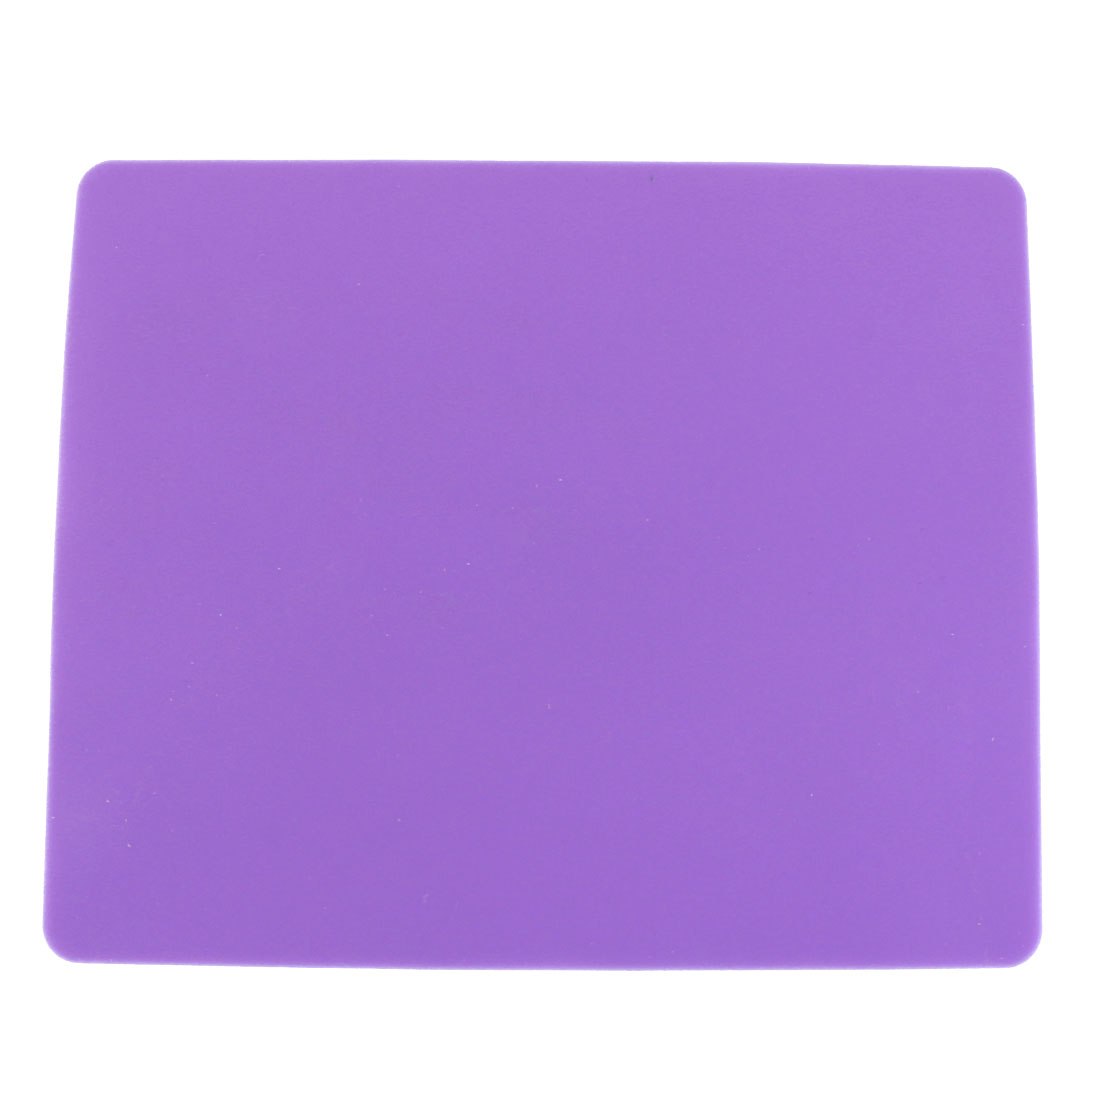 Rectangle Silicone Nonslip Purple Mouse Pad Mat for Laptop